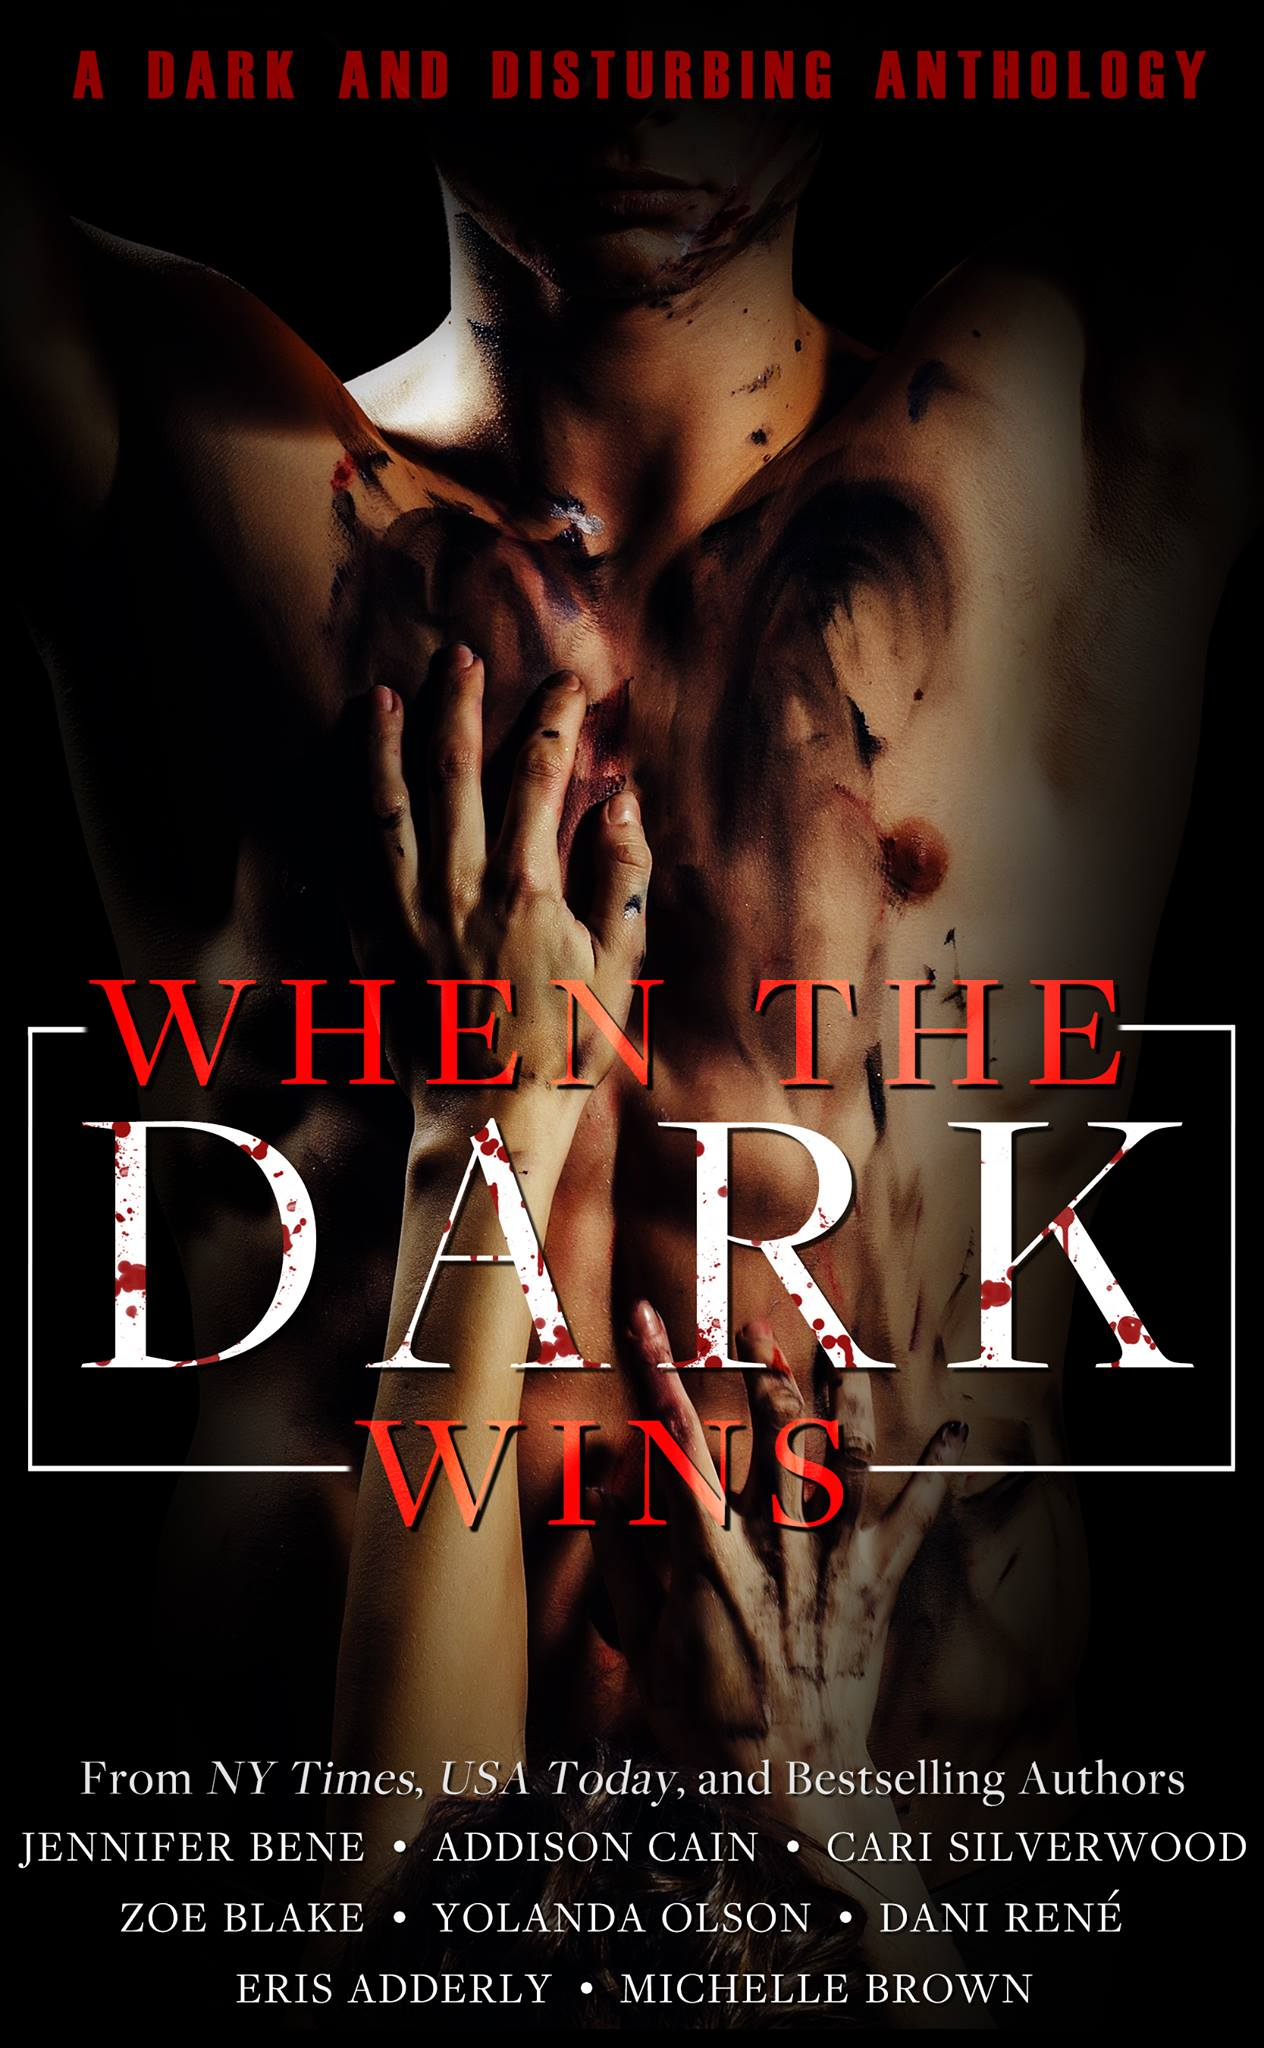 NEW: A Sinner in Virtue, in When the Dark Wins anthology